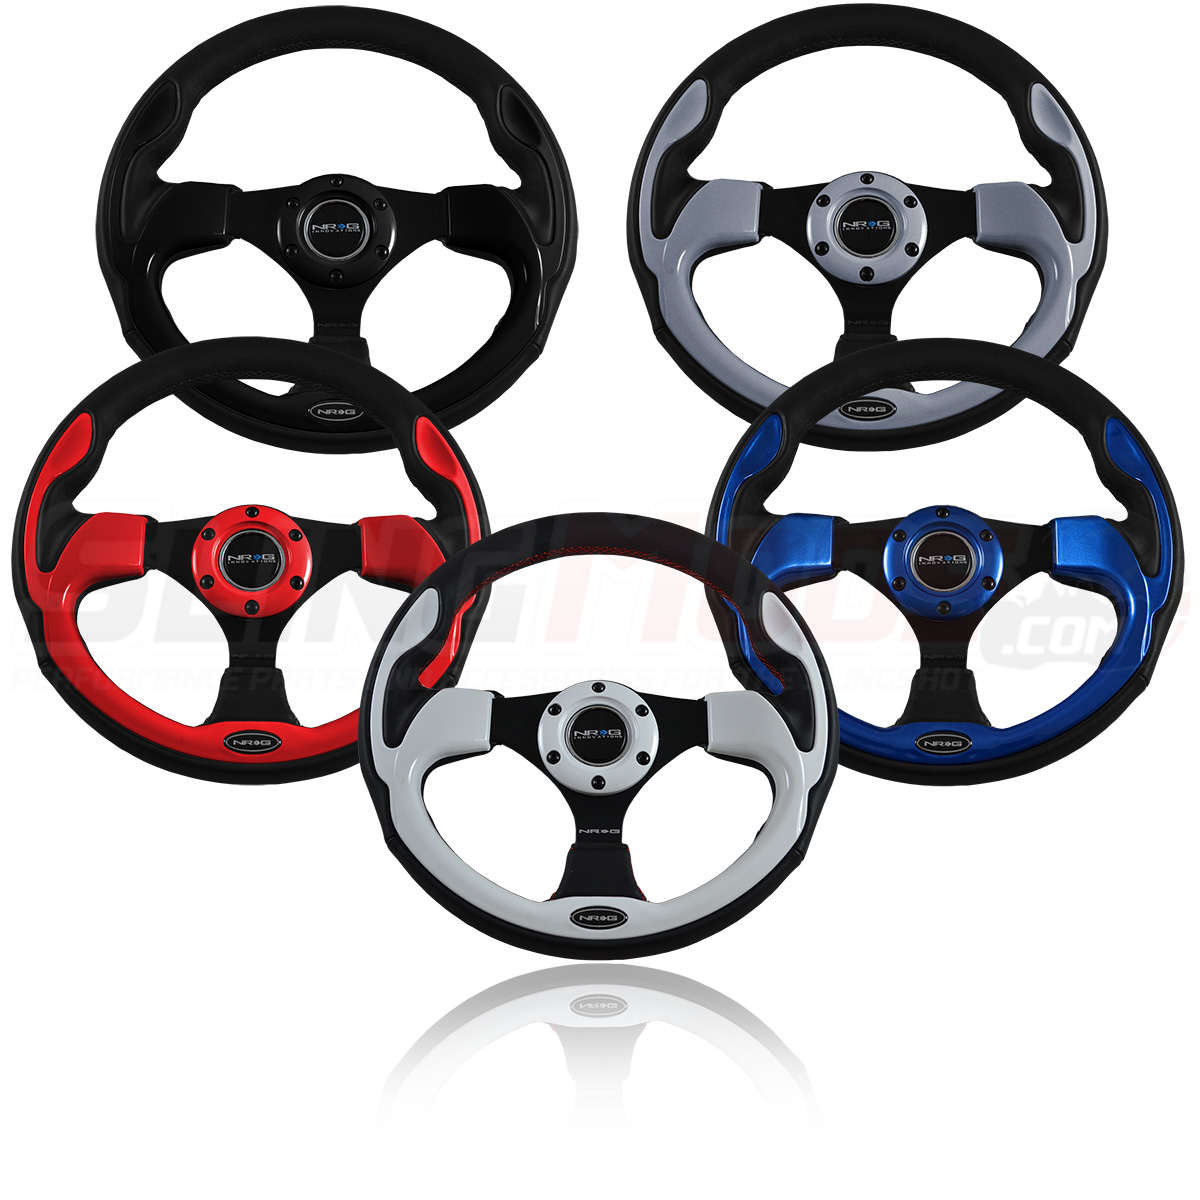 Polaris Slingshot Pilota Series Steering Wheels by NRG